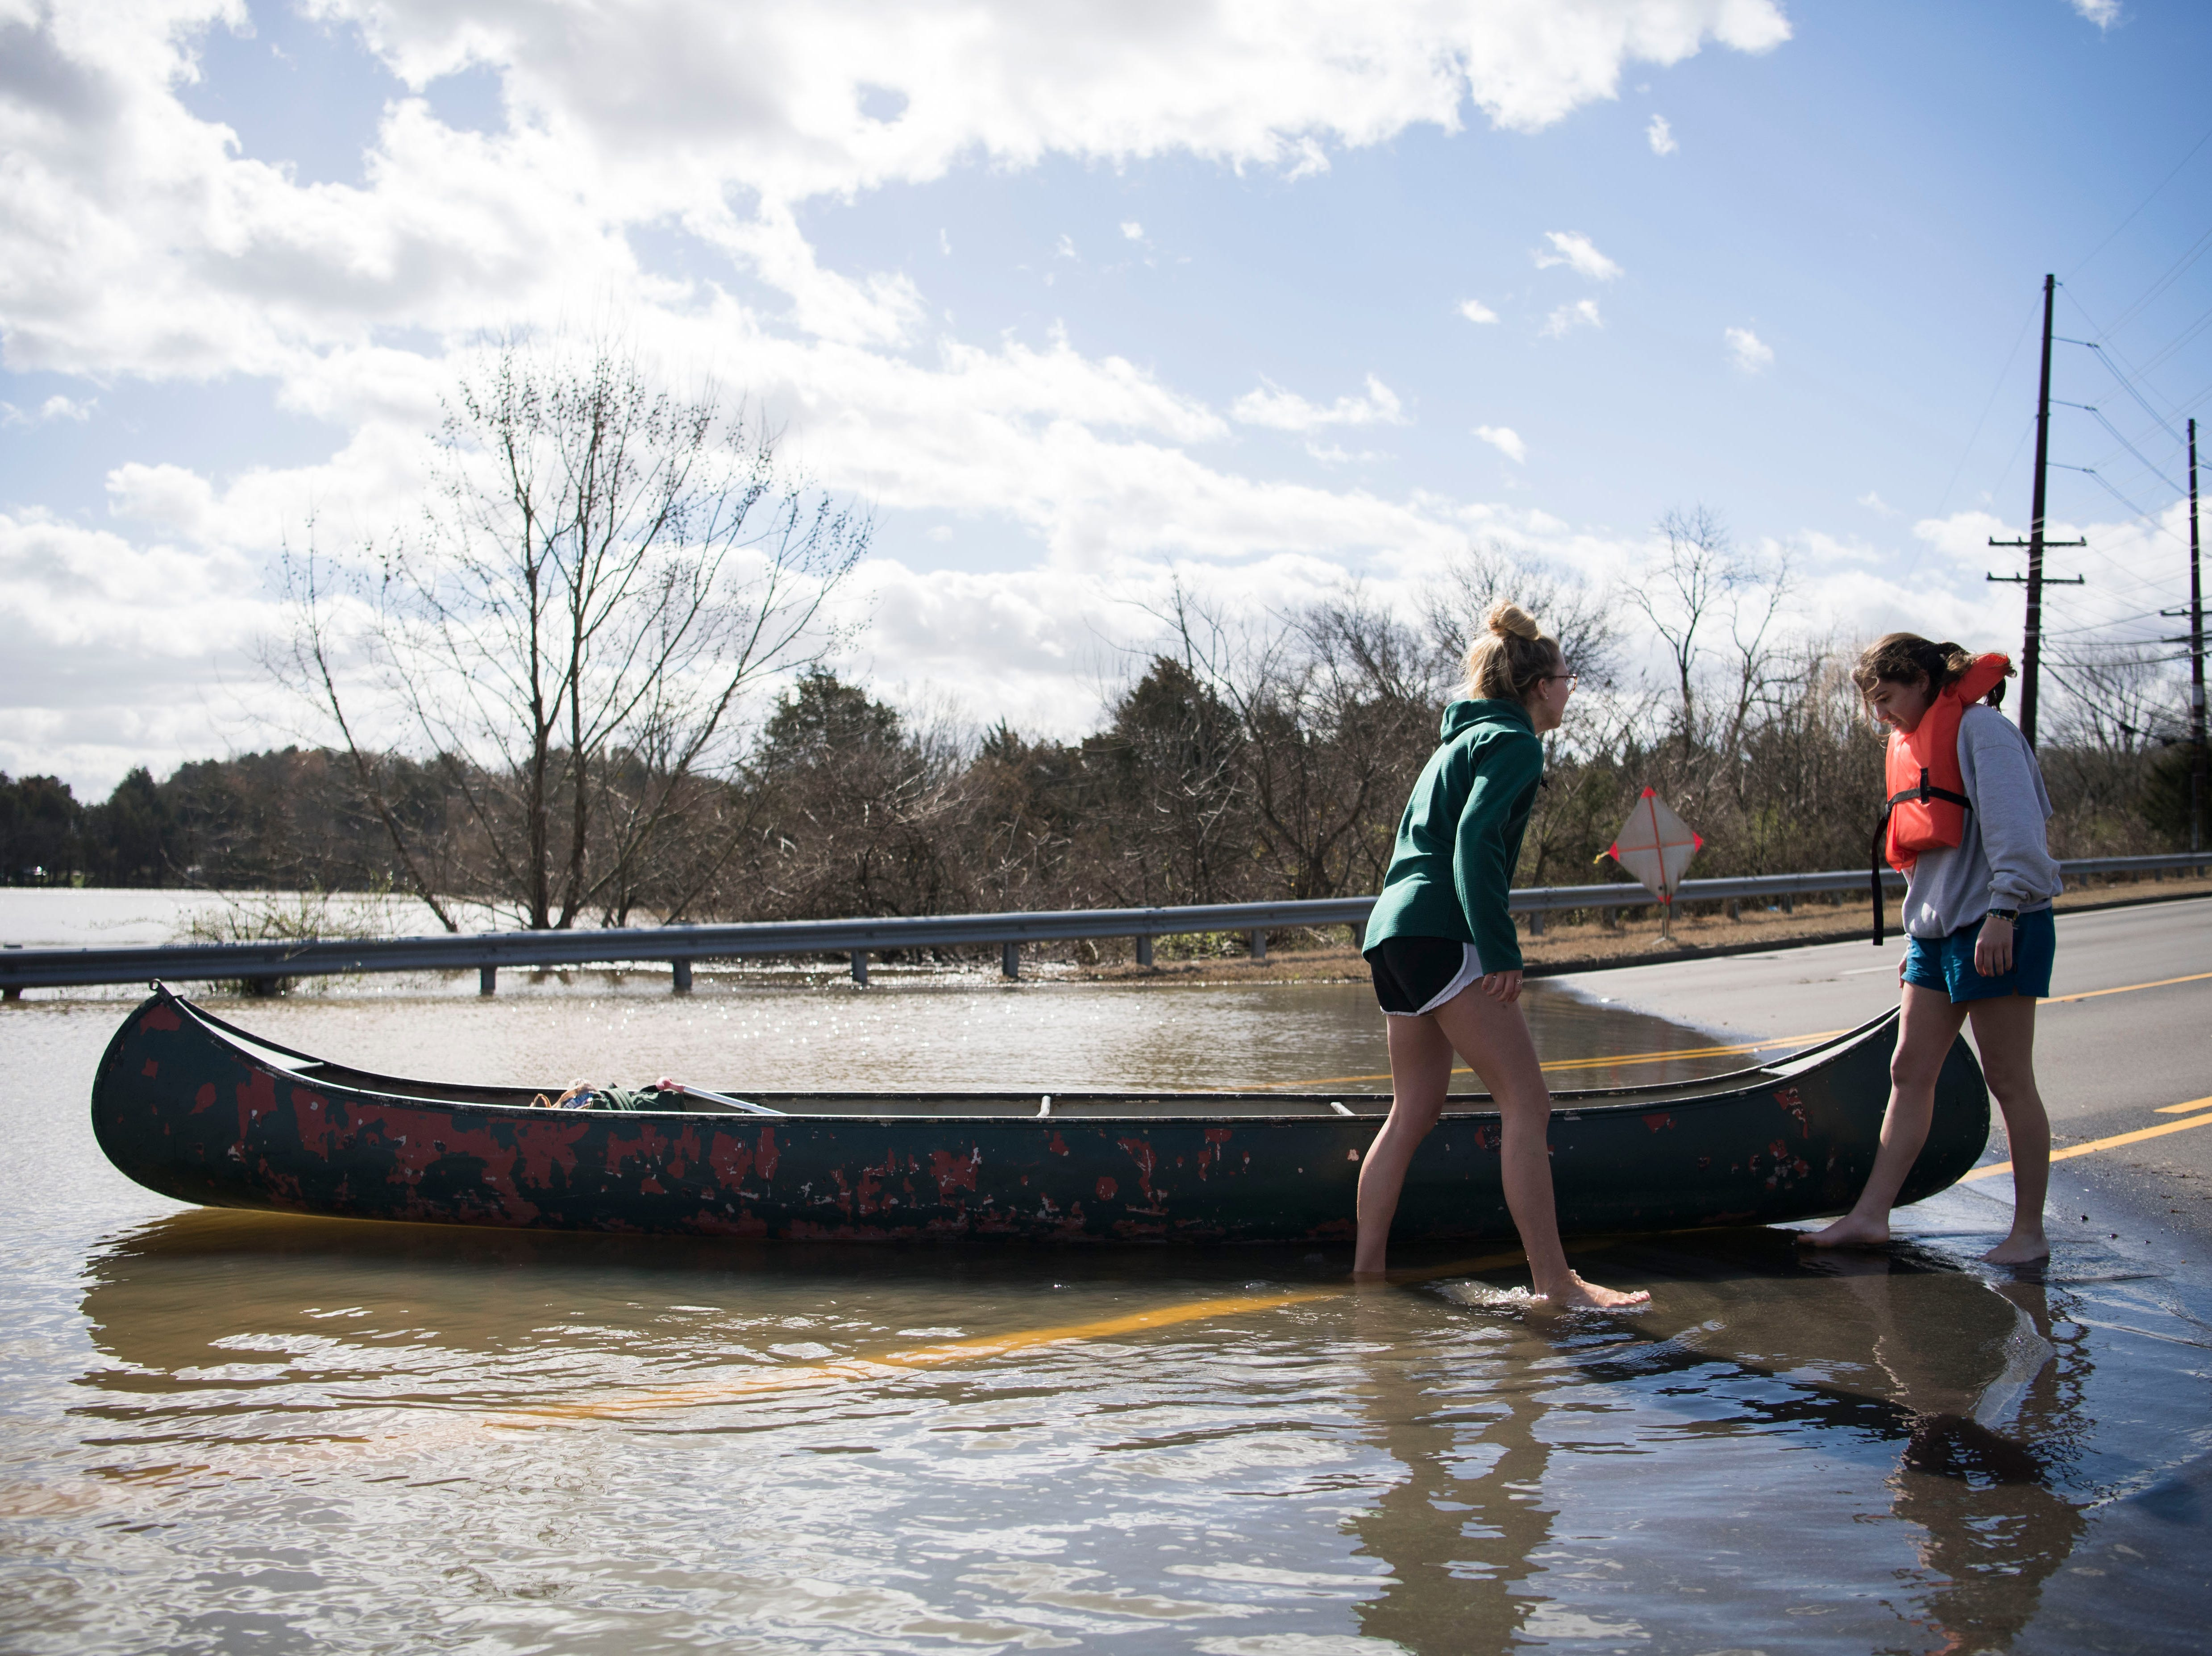 From left Ansley Pacetti, 18, and Julia Bryant, 18, prepare Bryant to canoe into flood waters on South Northshore Drive in Southwest Knox County Sunday, Feb. 24, 2019. Bryant canoed to her home which was surrounded by flood waters off Lantair Farm Lane, approximately three-quarters of a mile away.